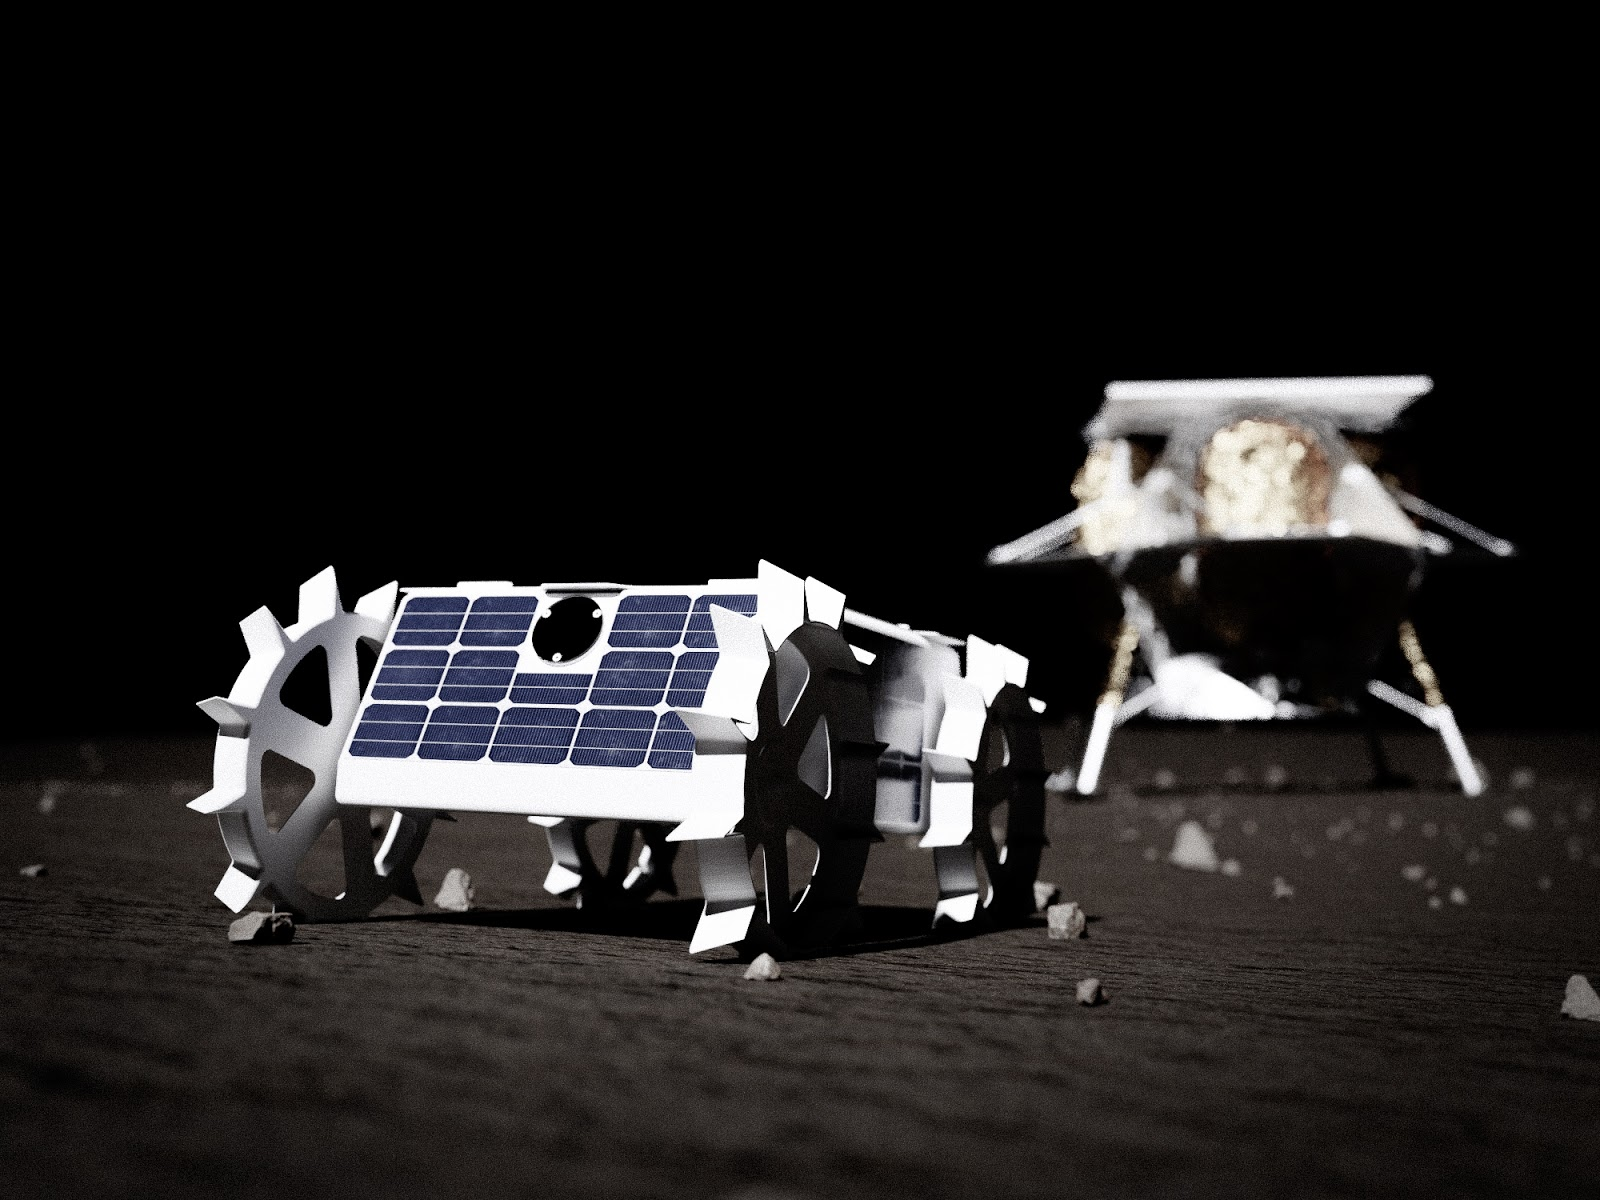 NASA Selects New Technology Partnerships for Moon and Mars Explorations